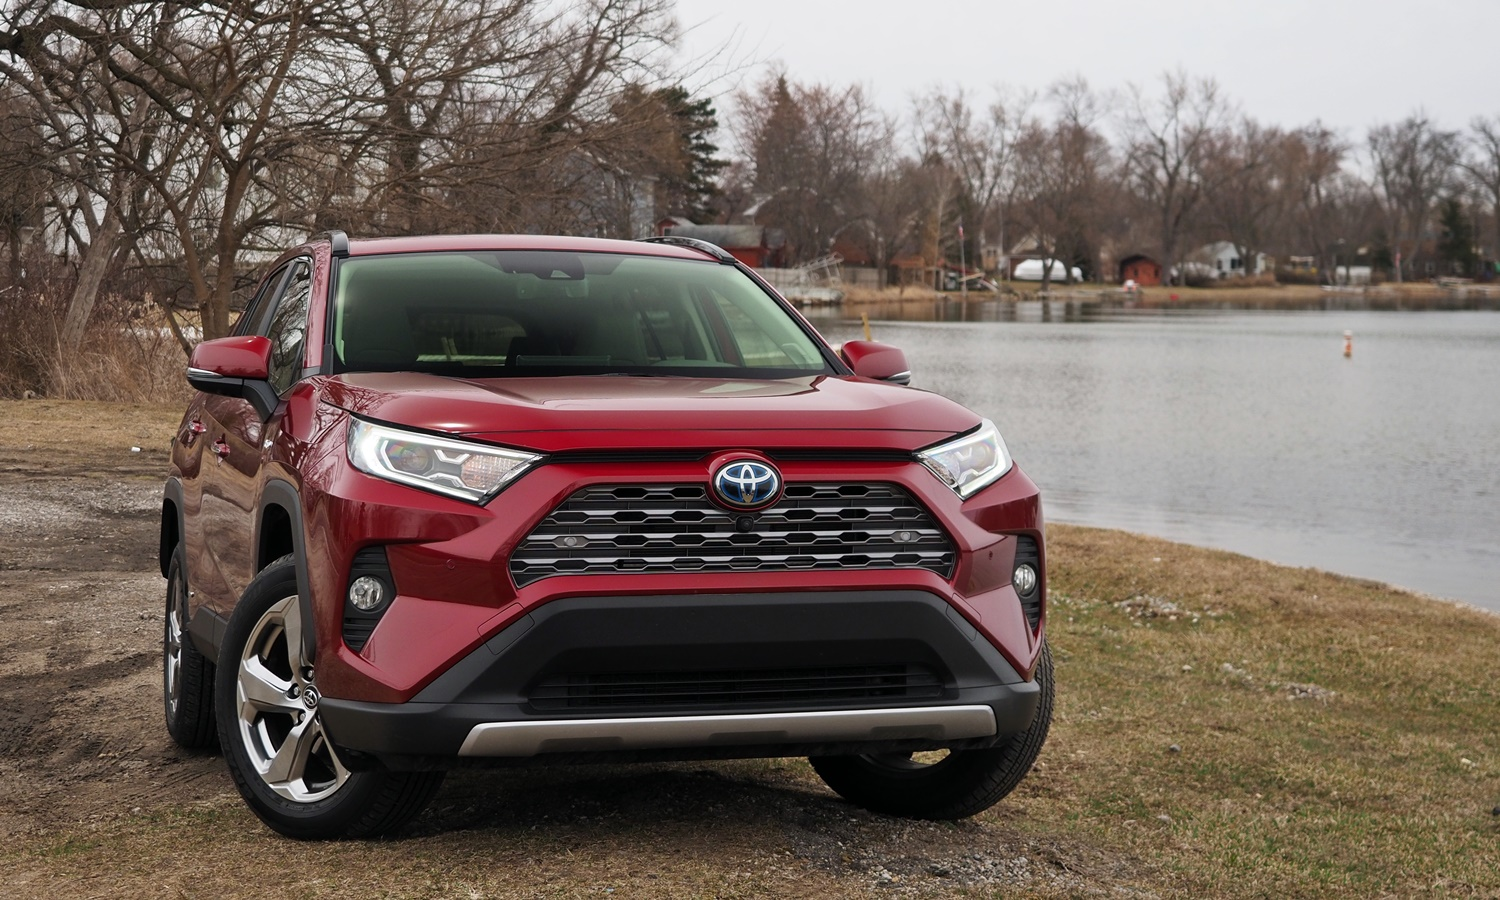 RAV4 Reviews: 2019 Toyota RAV4 front view